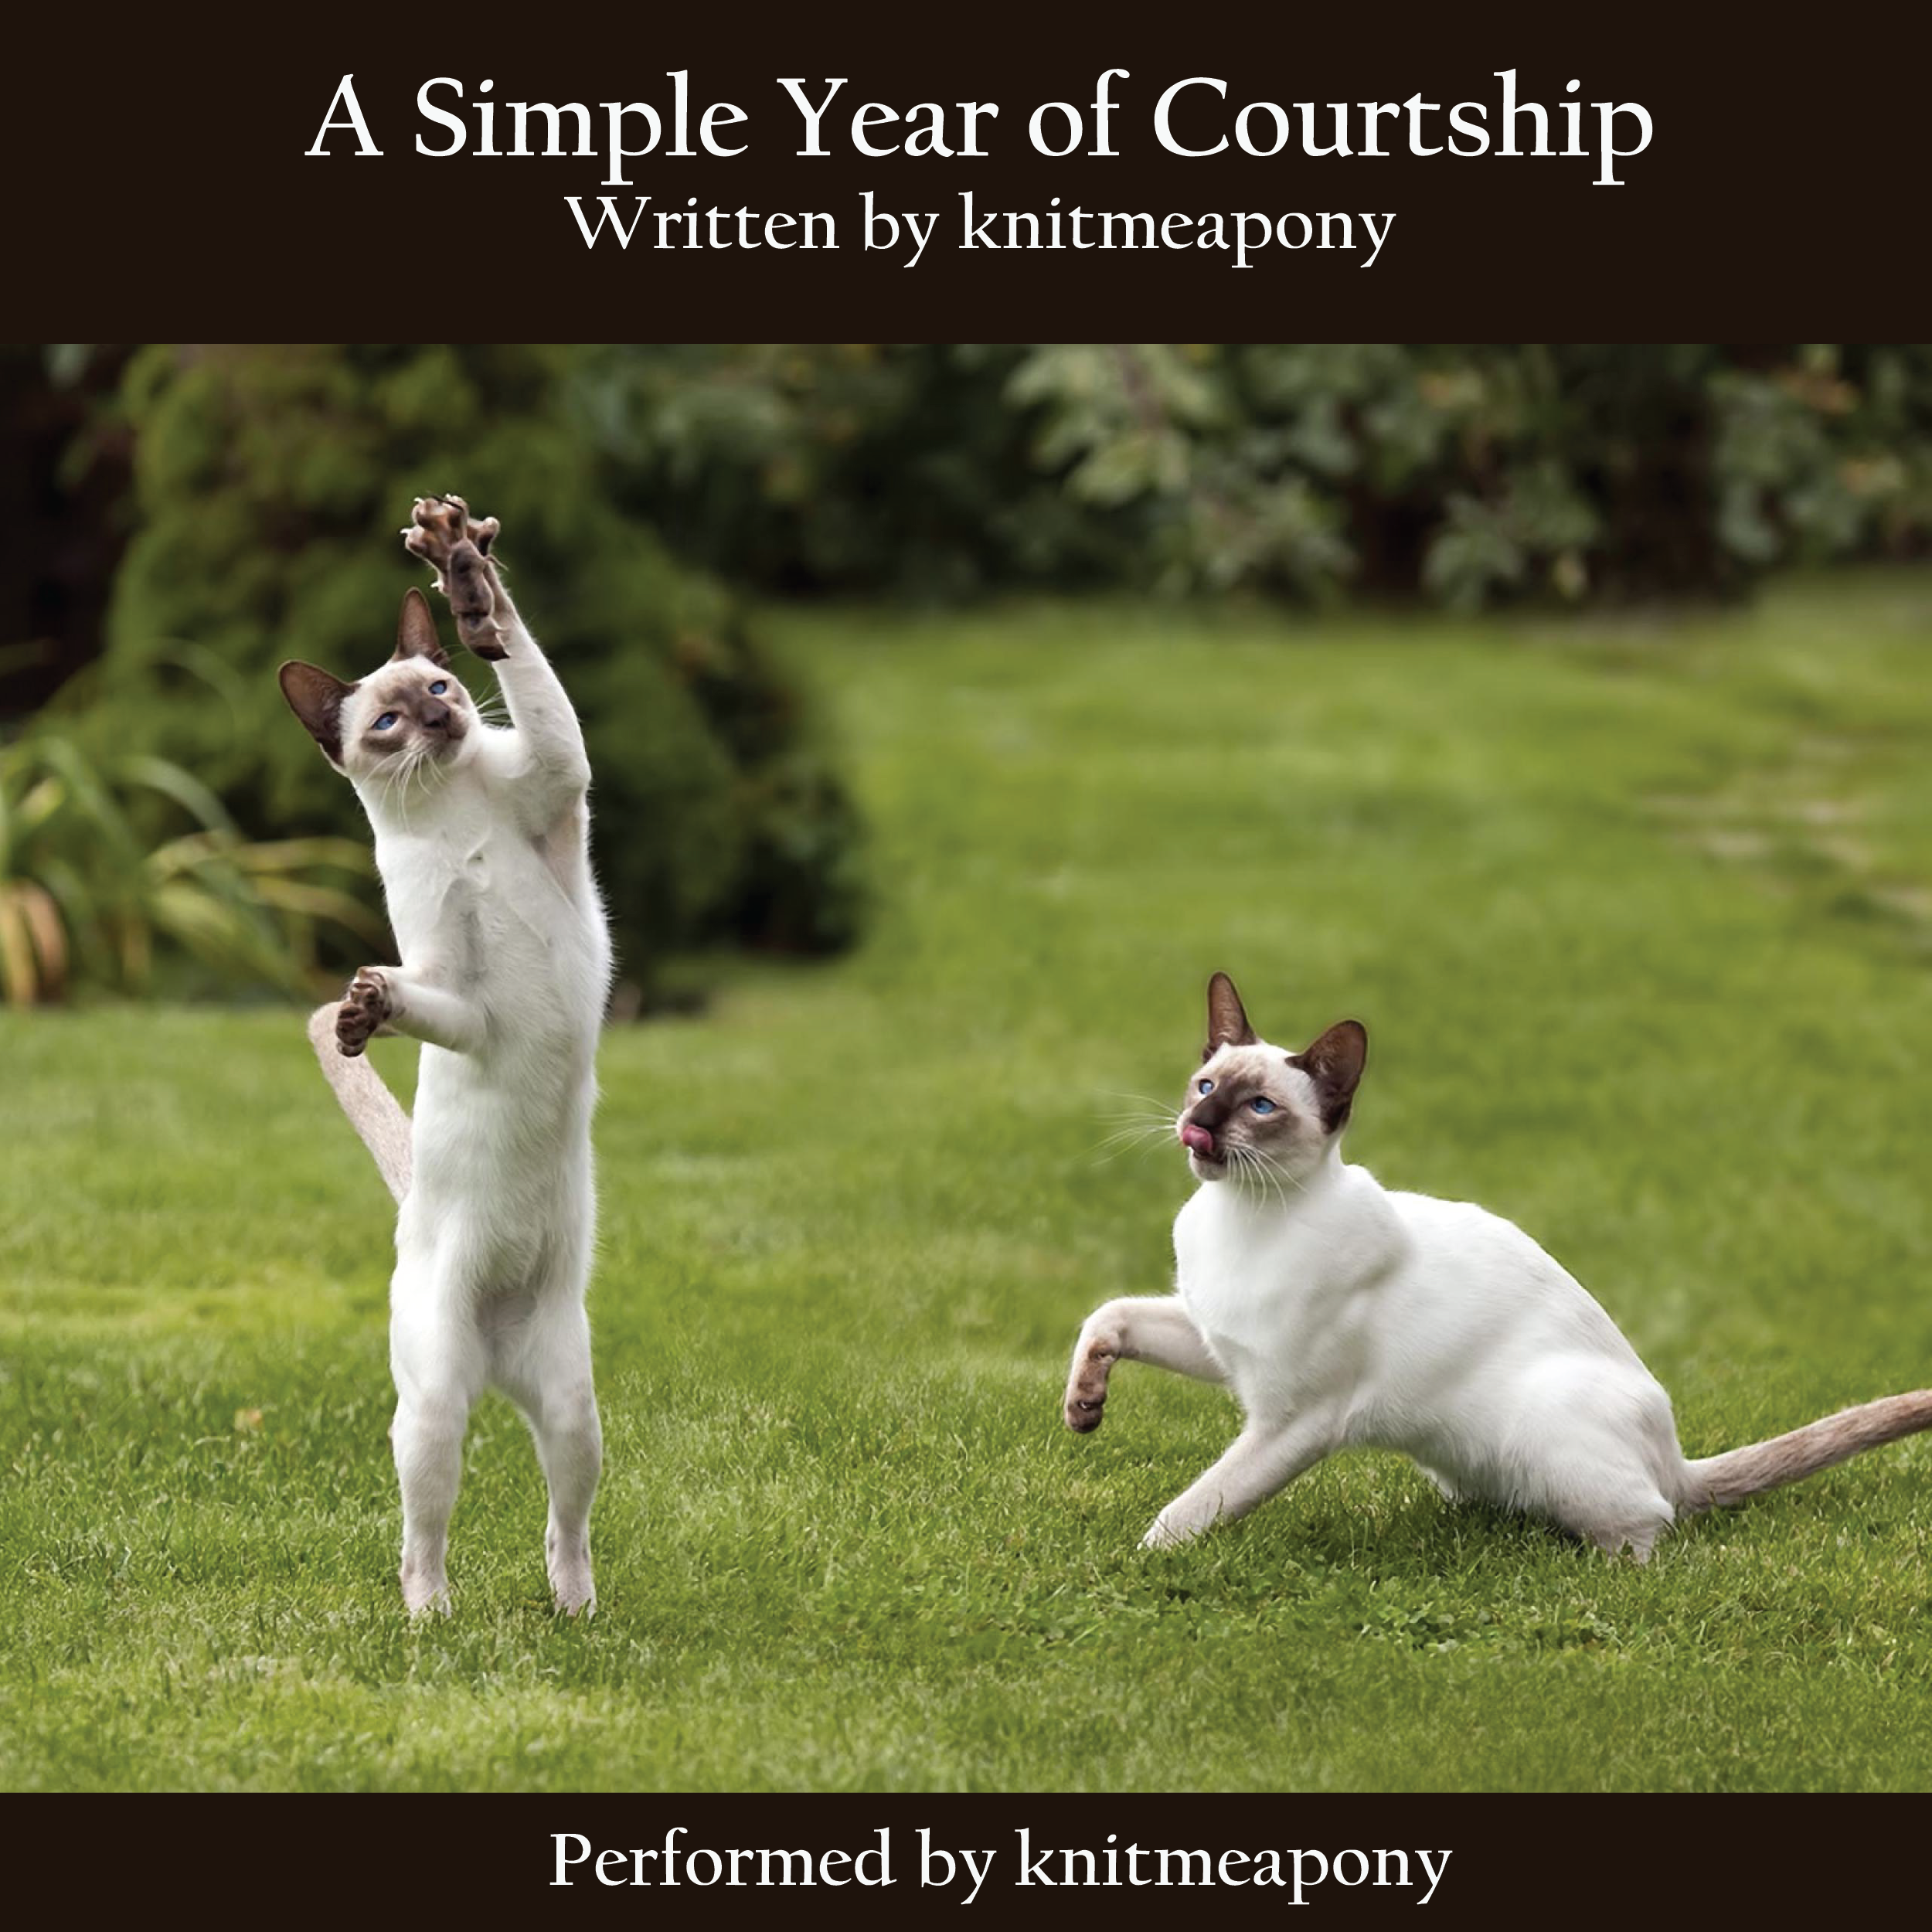 A Simple Year of Courtship Album Cover